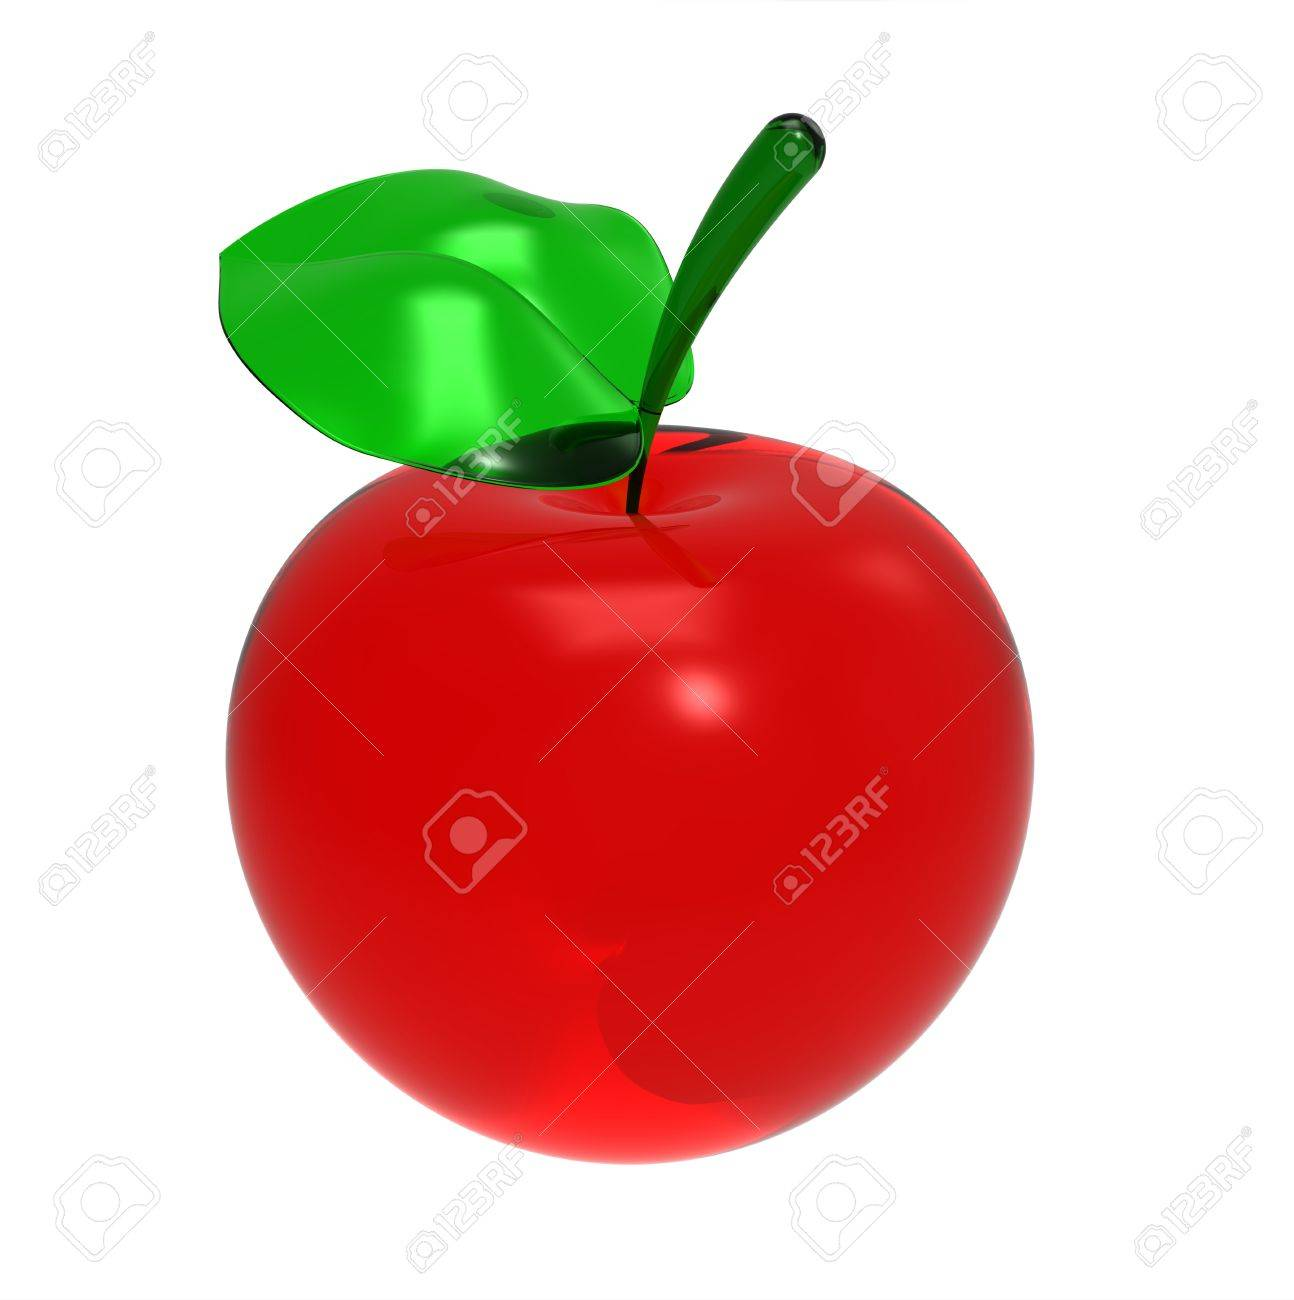 3d render of  red glass apple with a leaflet on a white background Stock Photo - 9824227